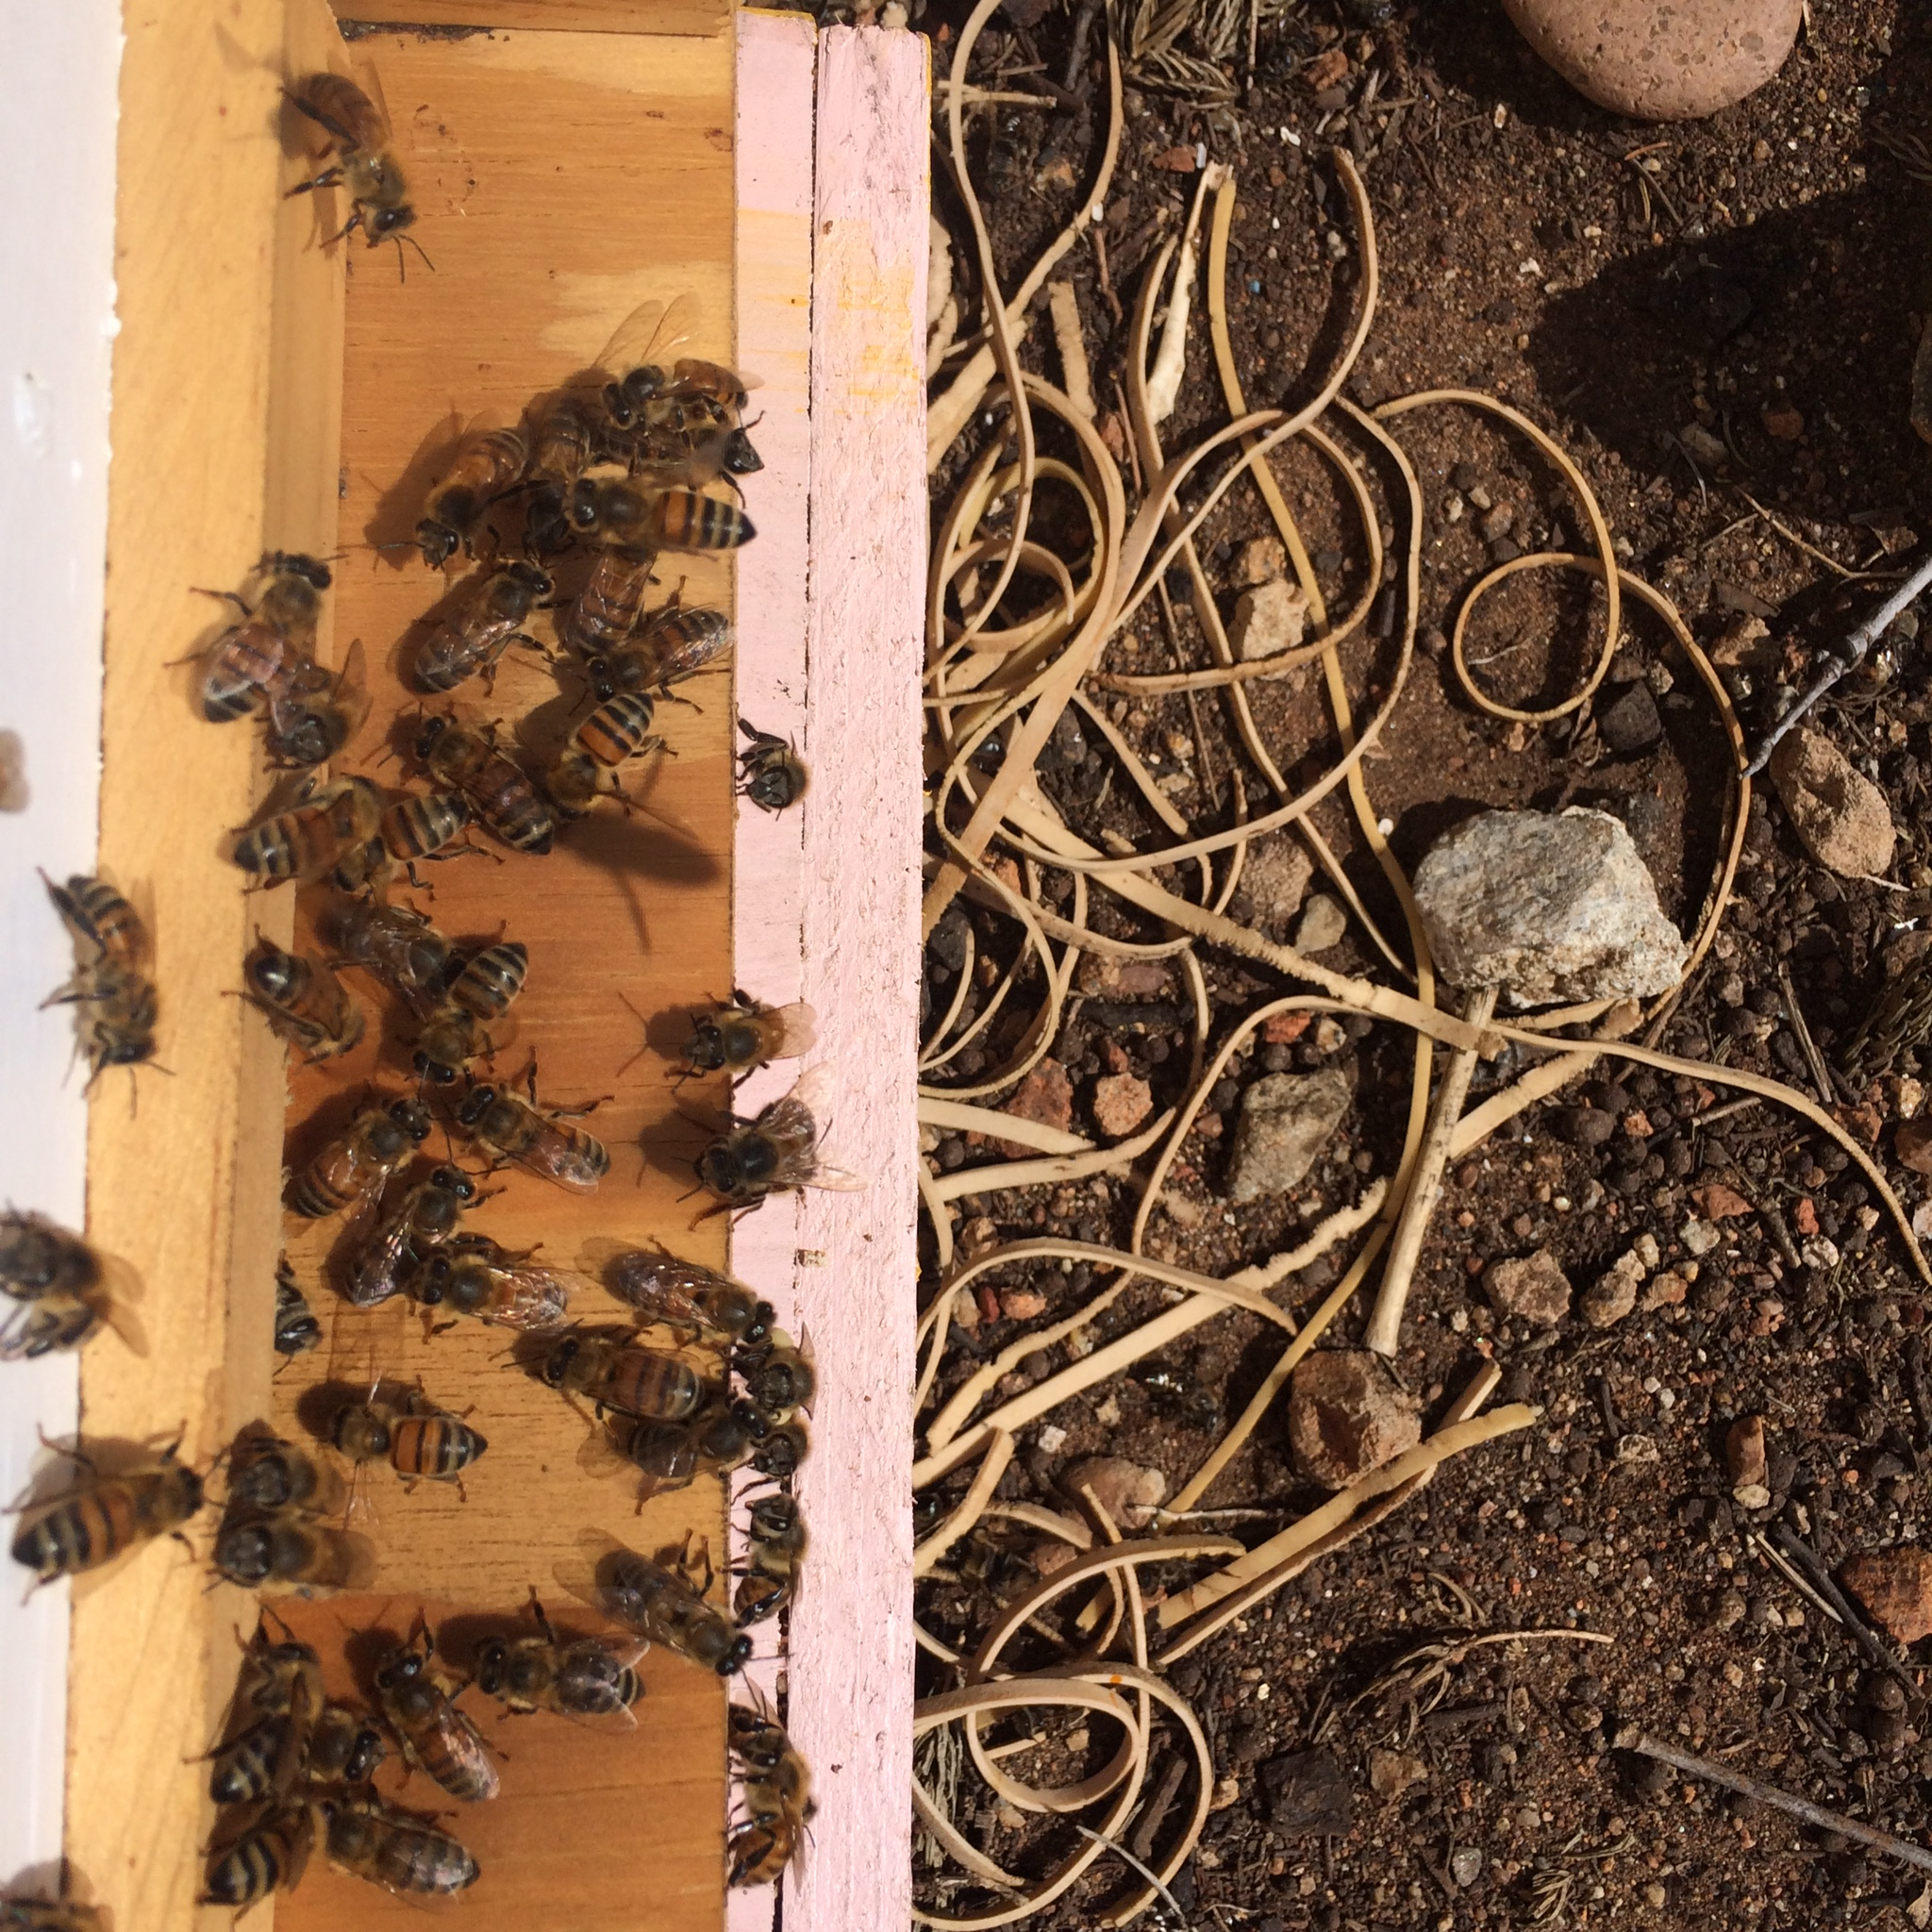 beekeeping like a how to foundationless beekeeping in a